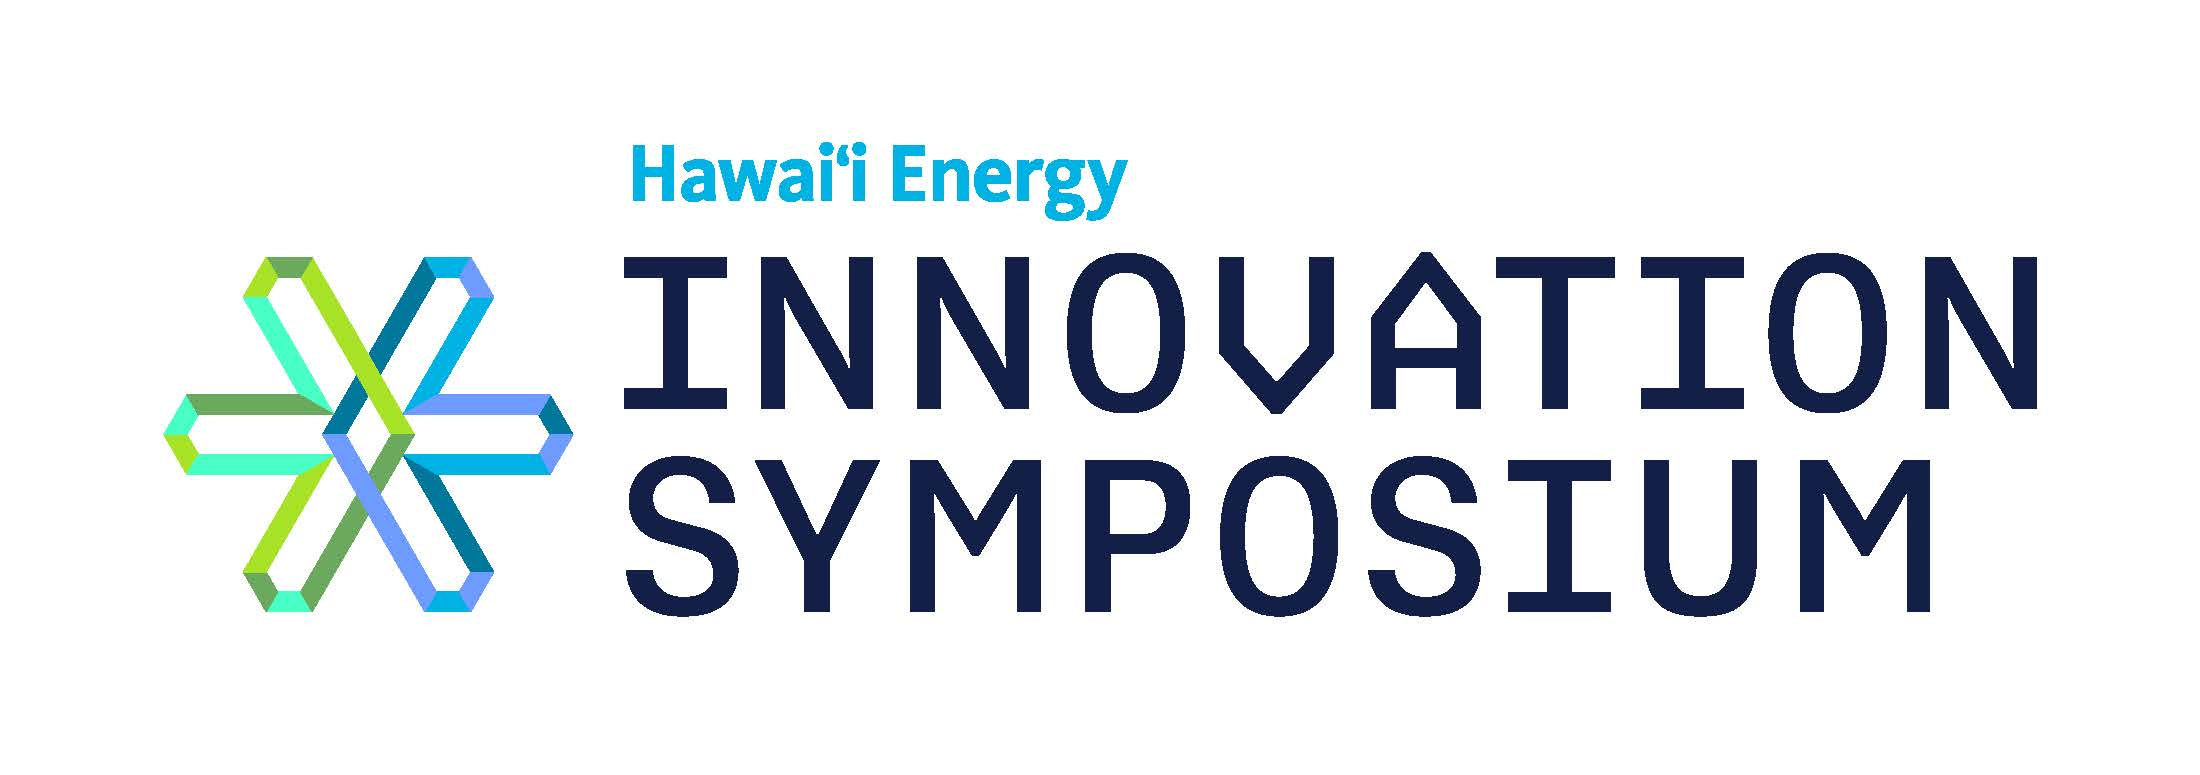 Hawaii Energy Innovation Symposium